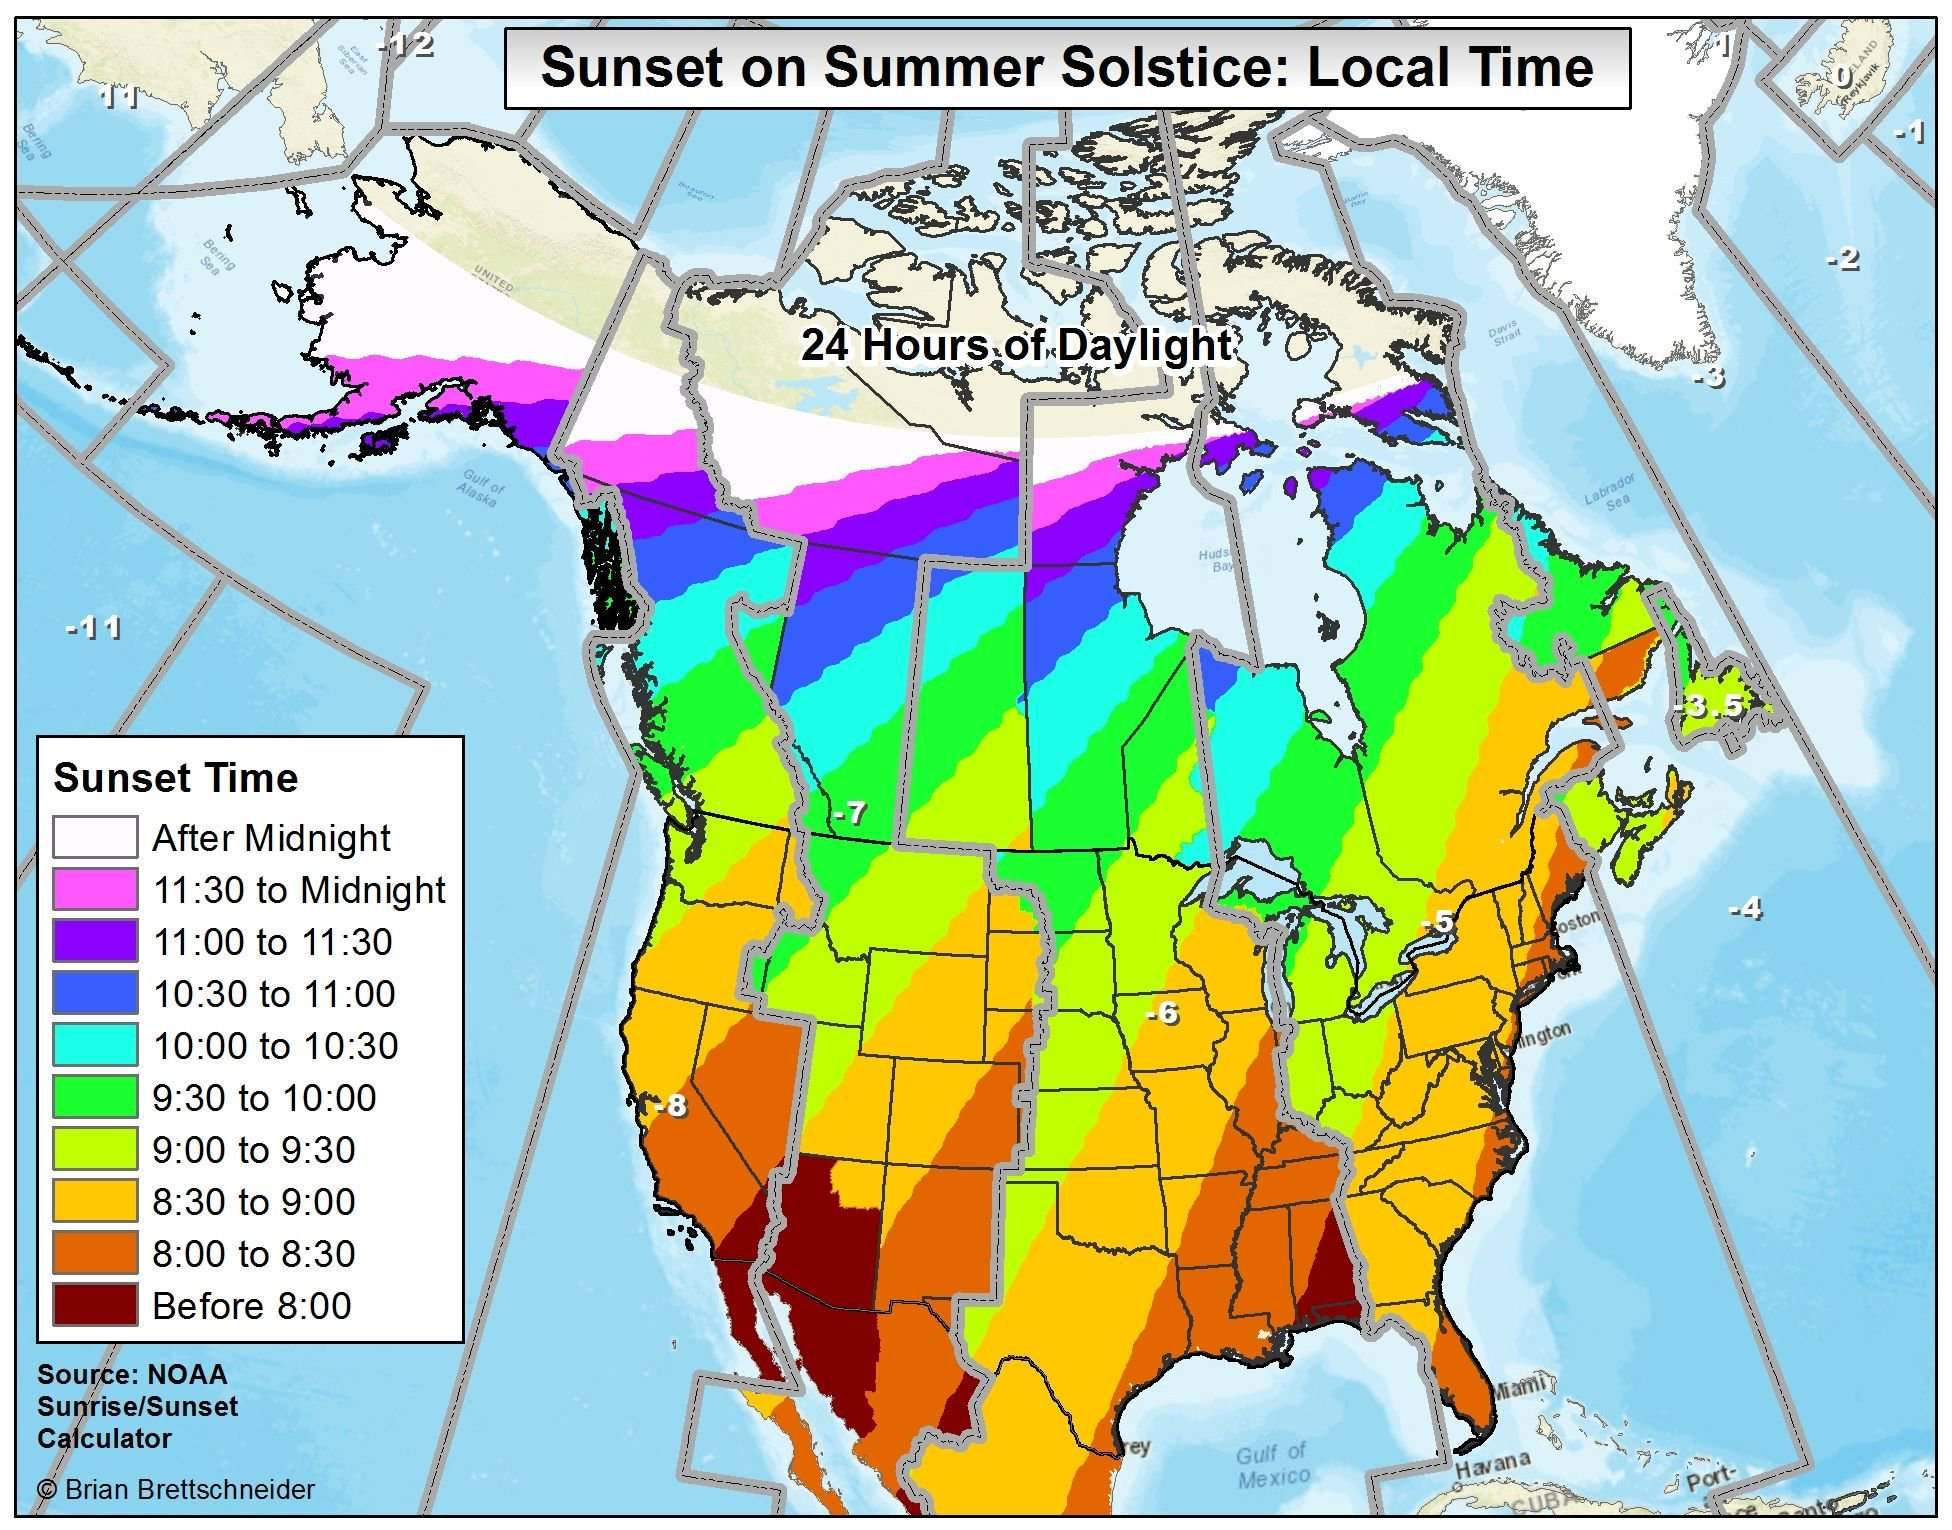 A Map Of Sunset Times On The Summer Solstice Across The USA And - Map of canada and usa